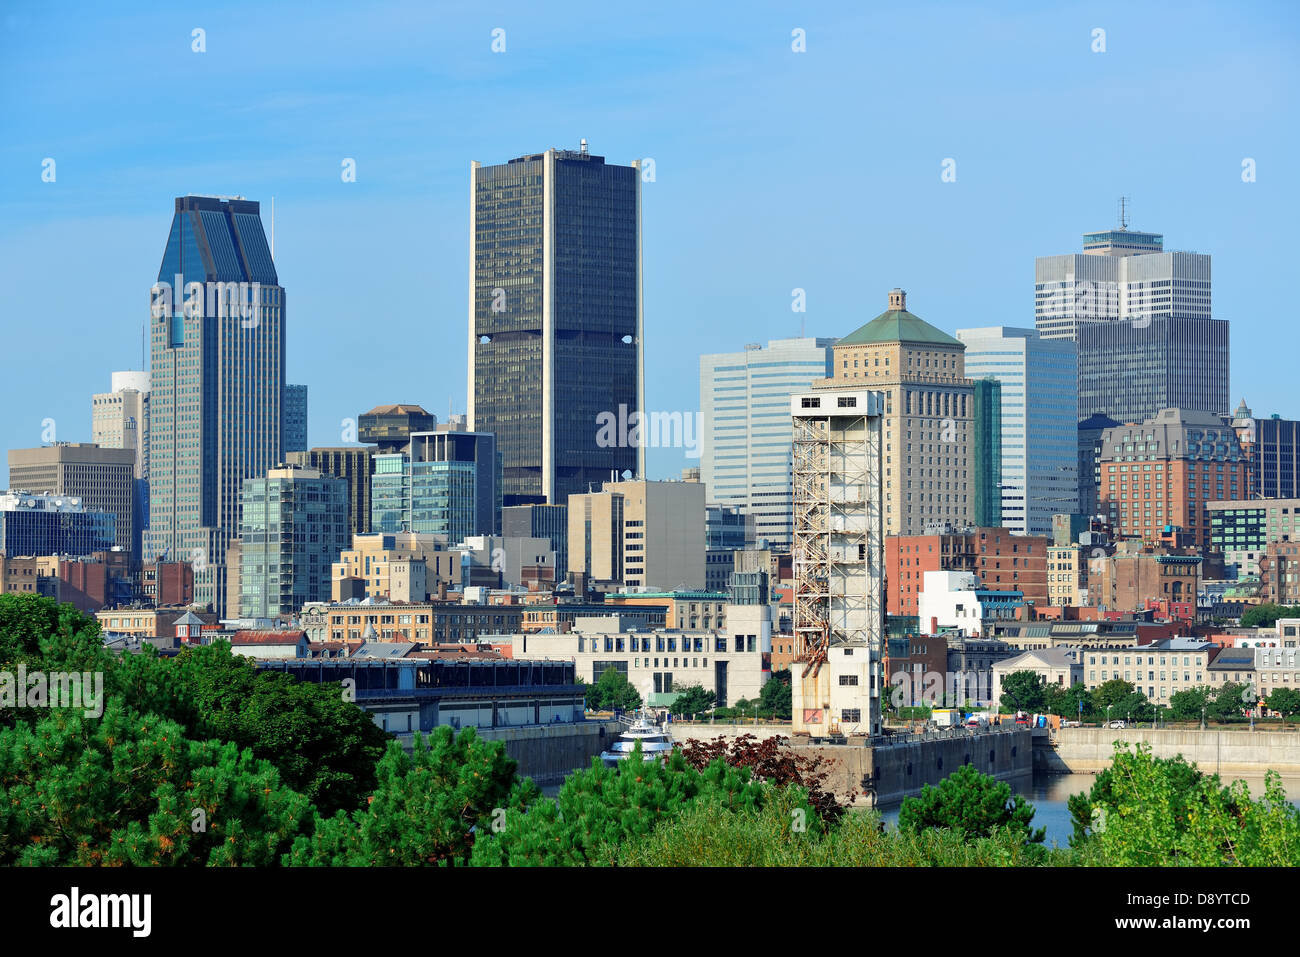 Montreal city skyline in the day with urban buildings - Stock Image